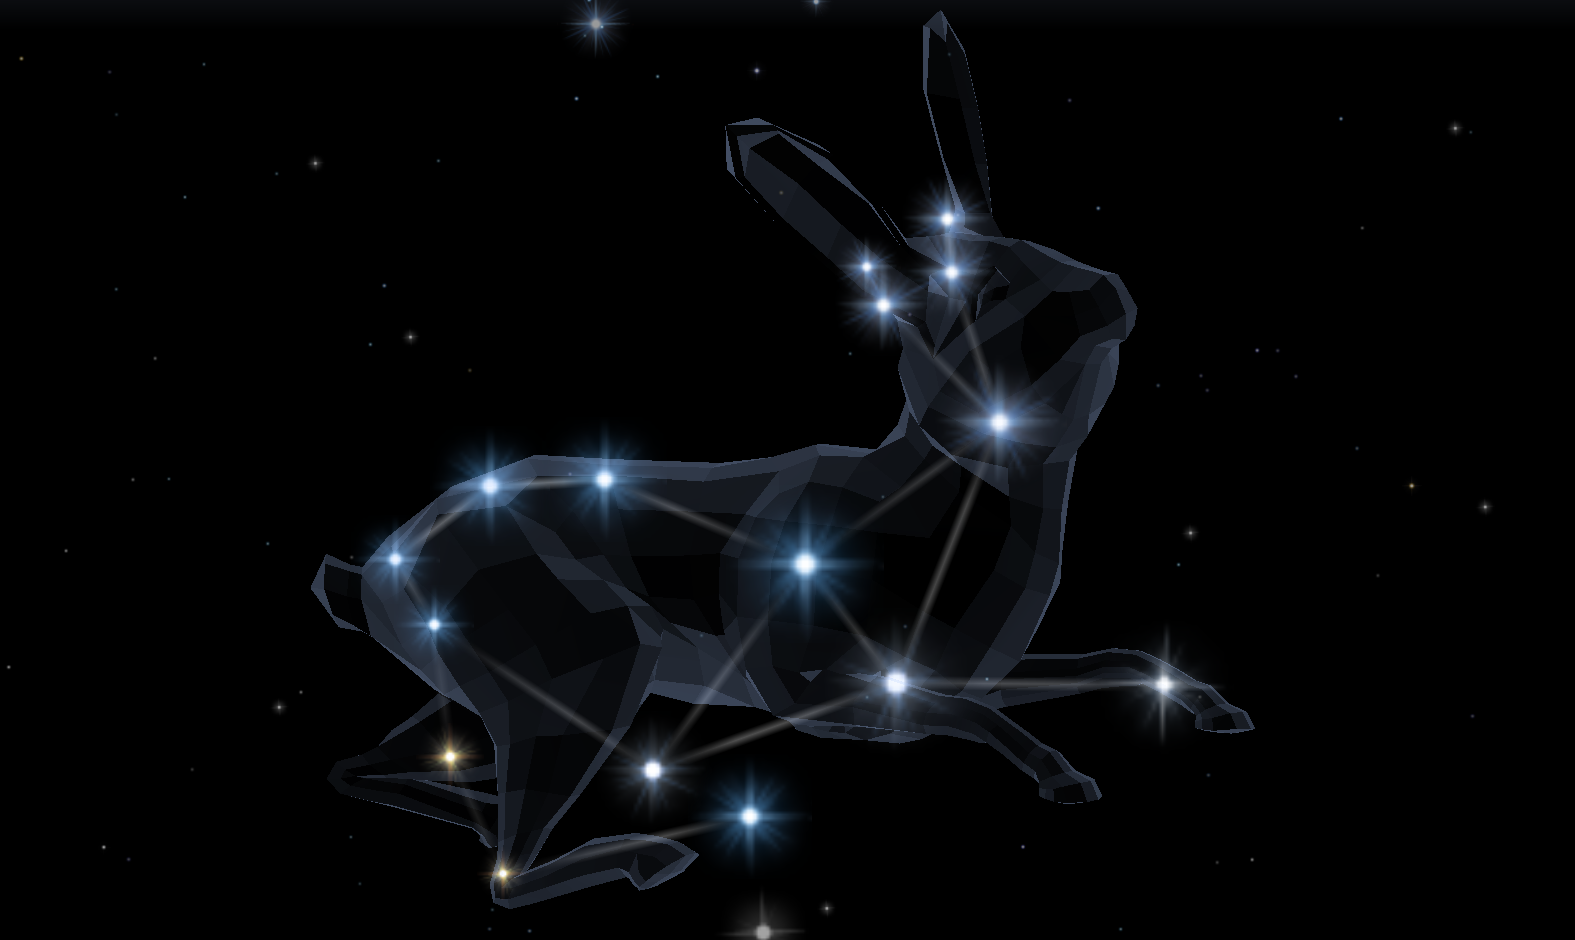 Lepus - The Stars and Planets